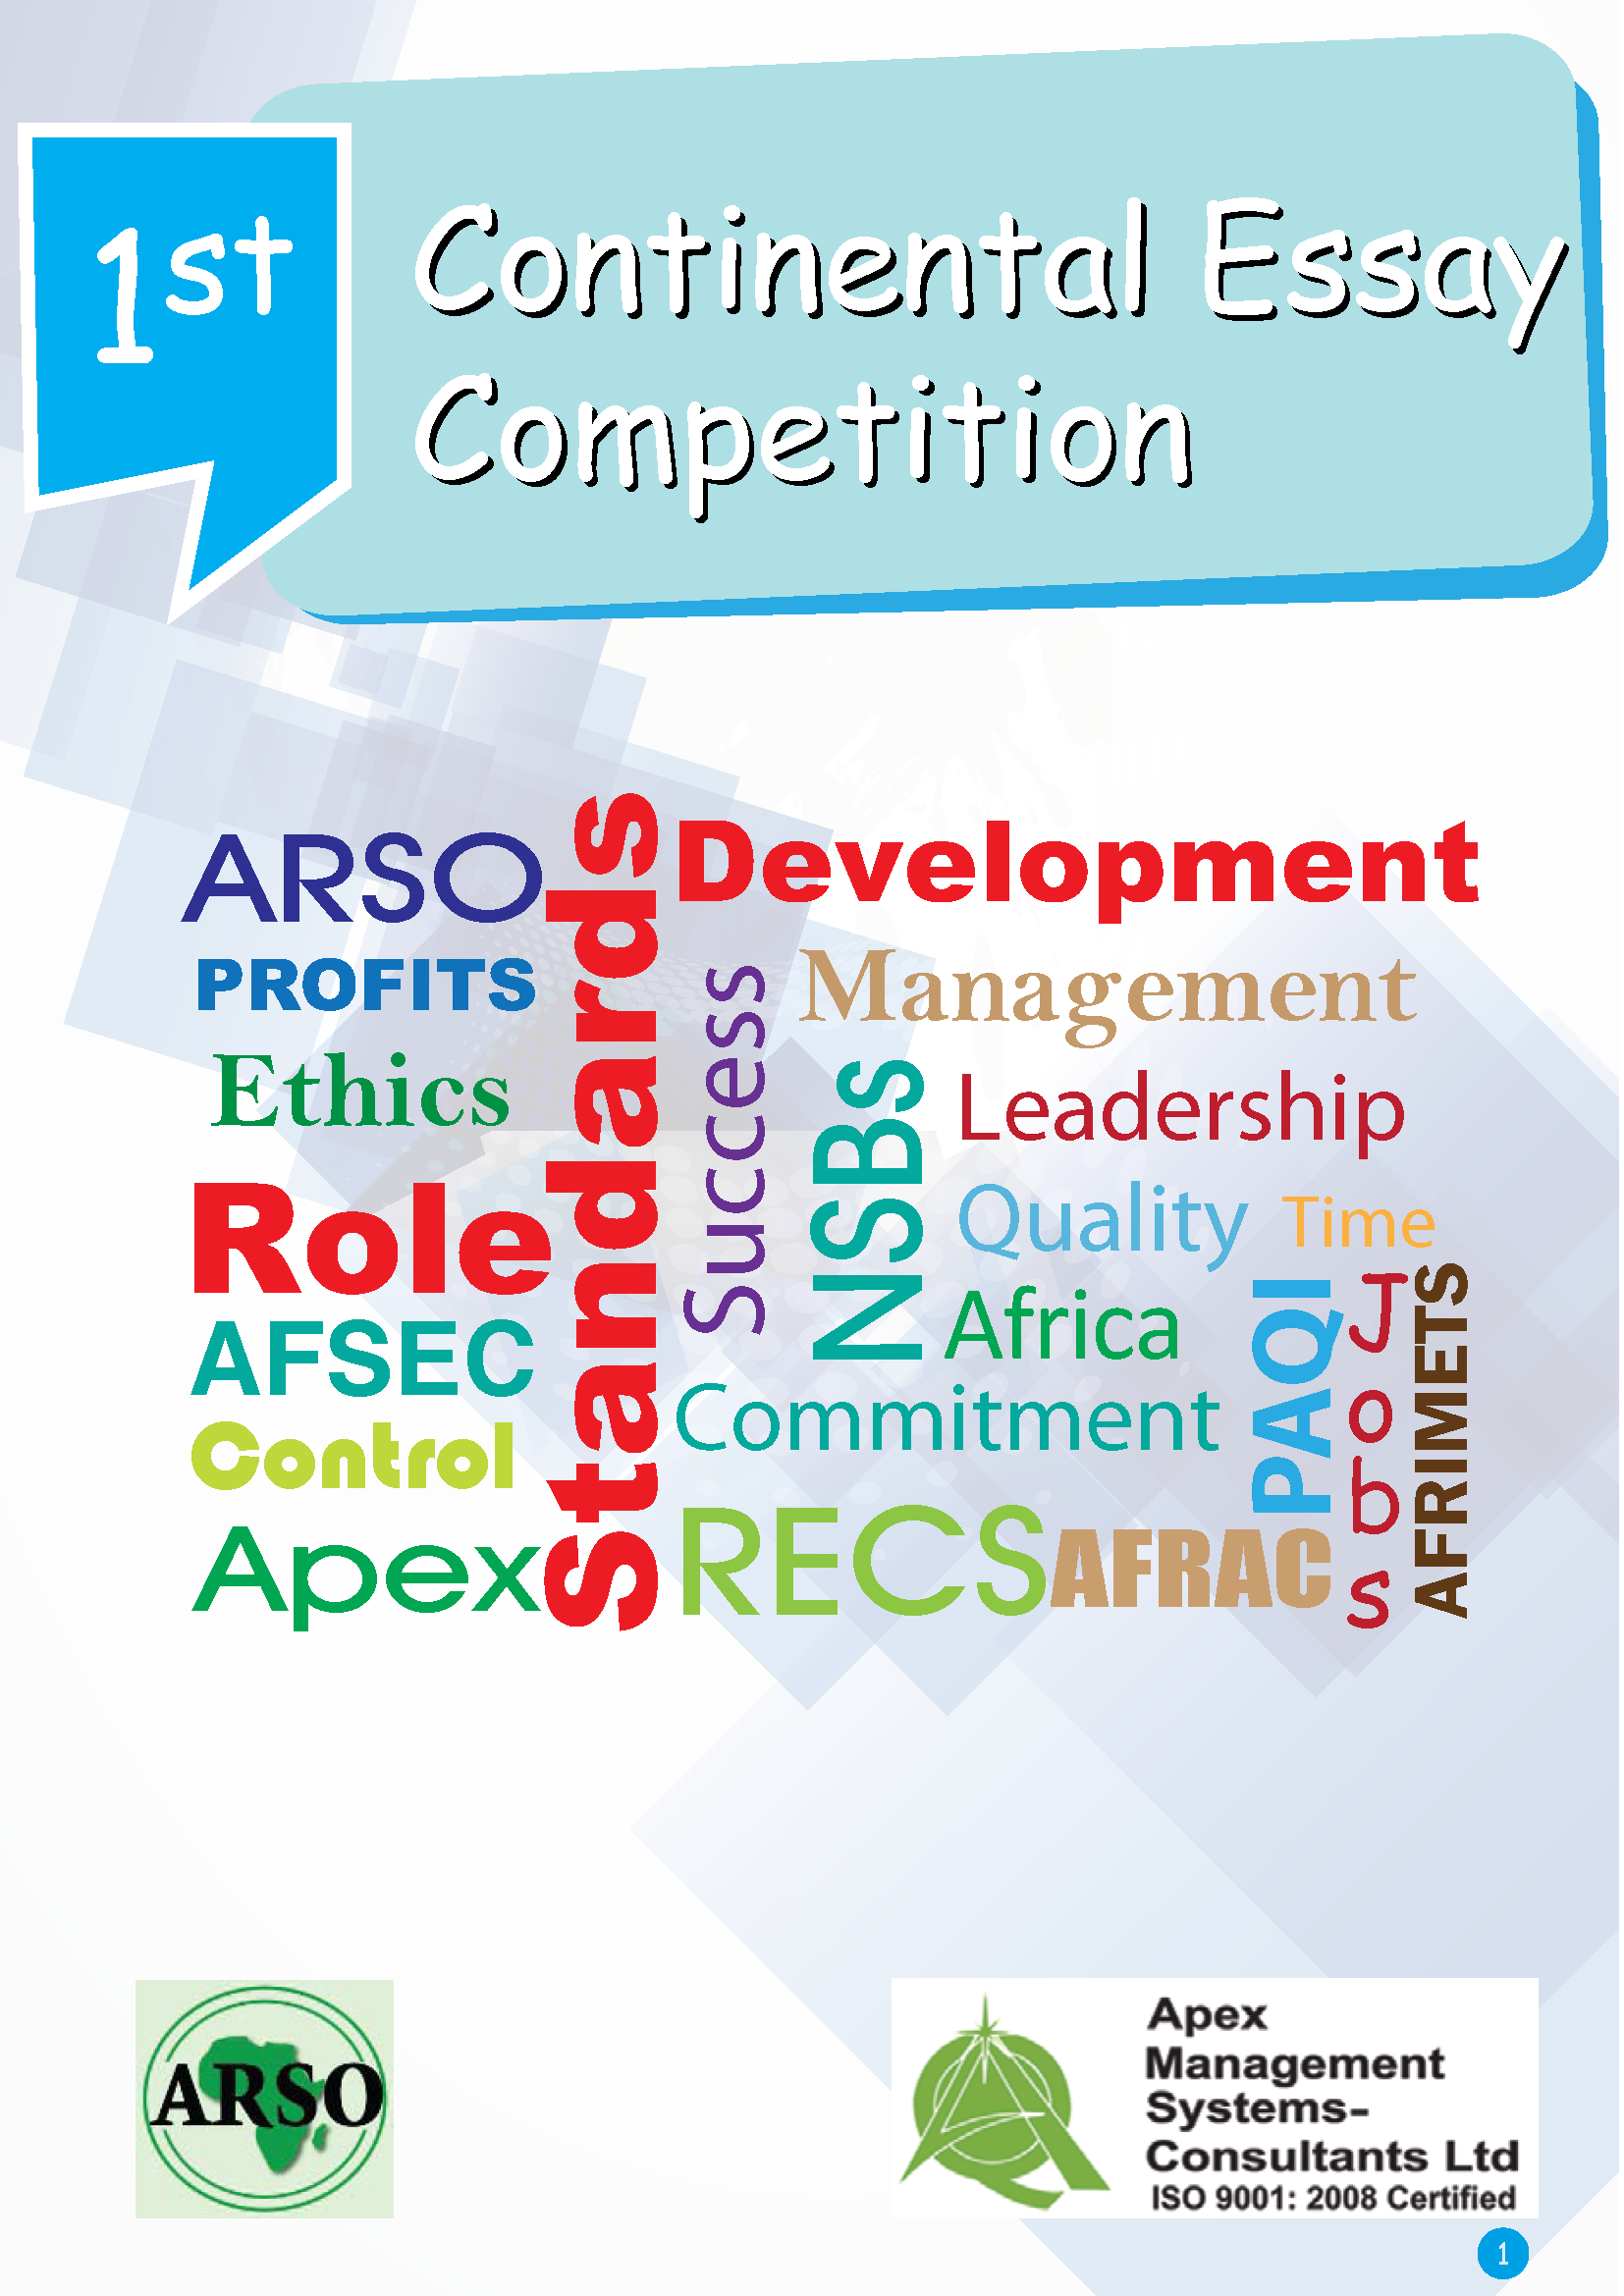 014 Arso Essay Competition Example Imposing Contests 2014 Maryknoll Contest Winners Full